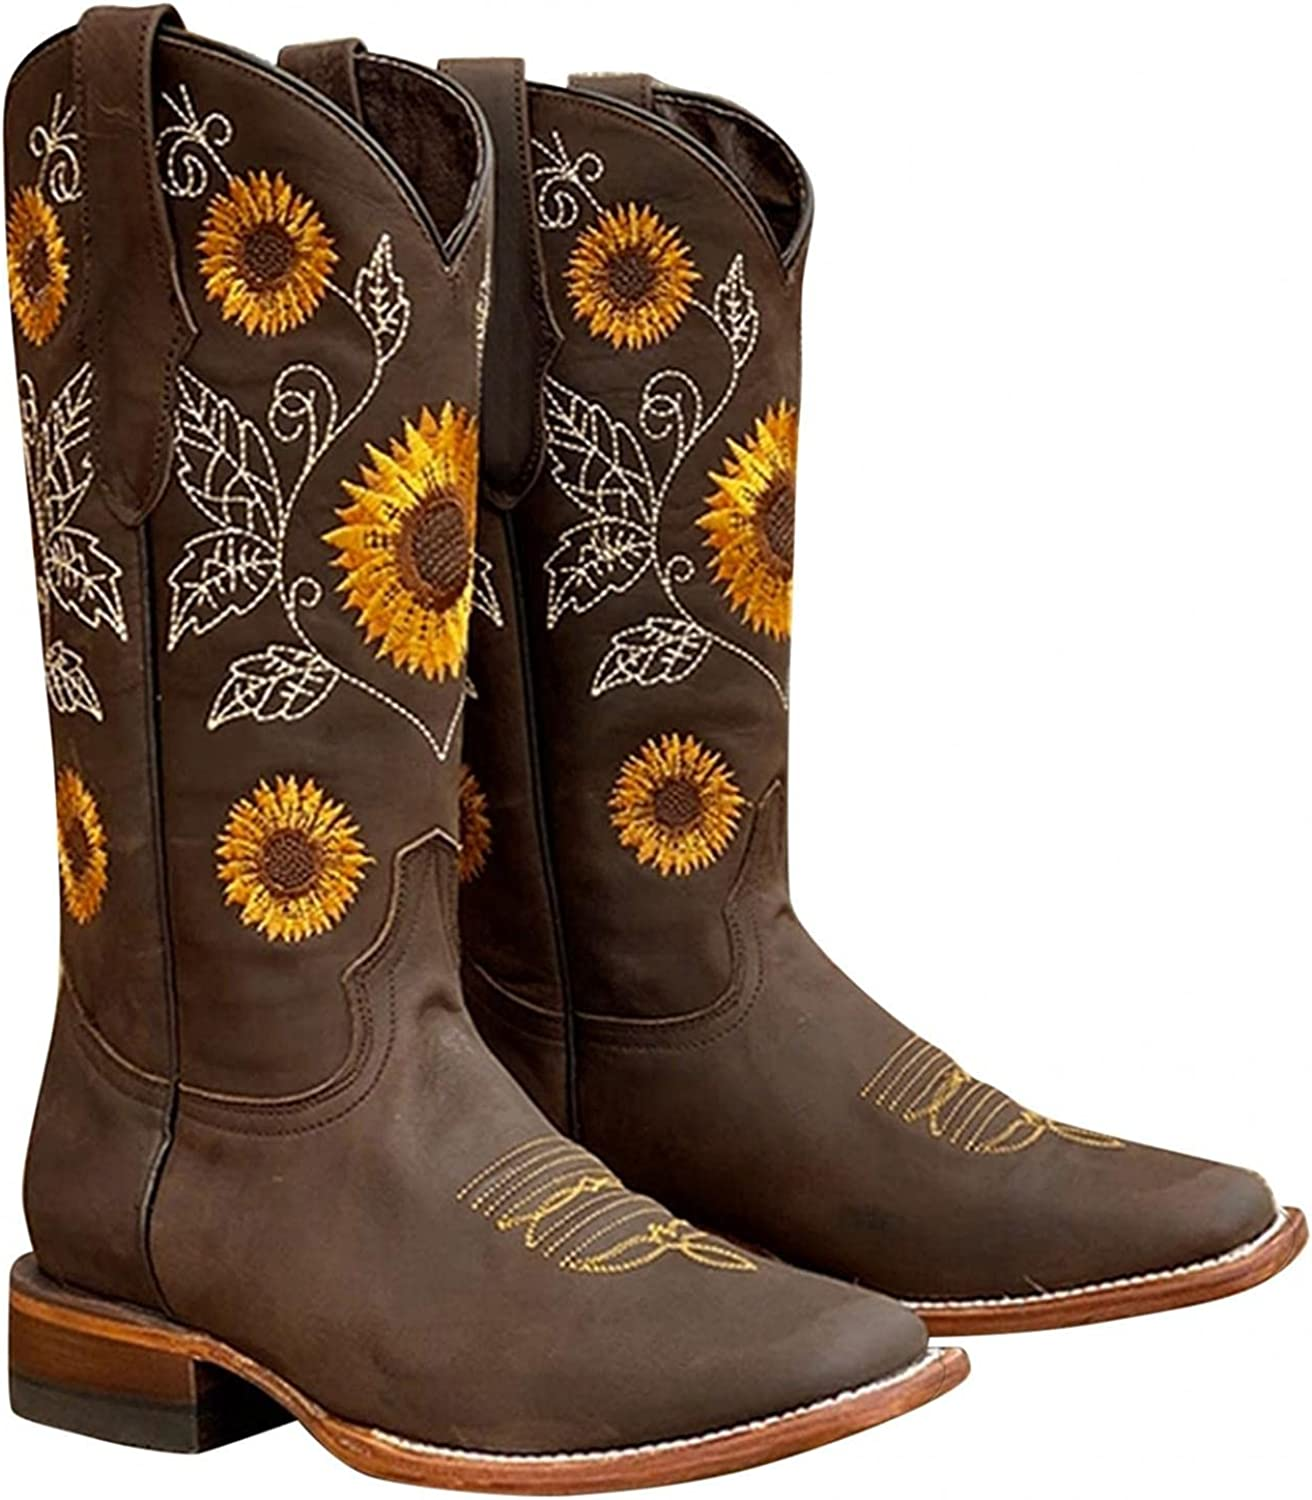 Cowboy Boots for Women Floral Embroidered Western Casual Shoes Cowgirl Boots Low Heel Mid Calf Boots Warm Platform Boots